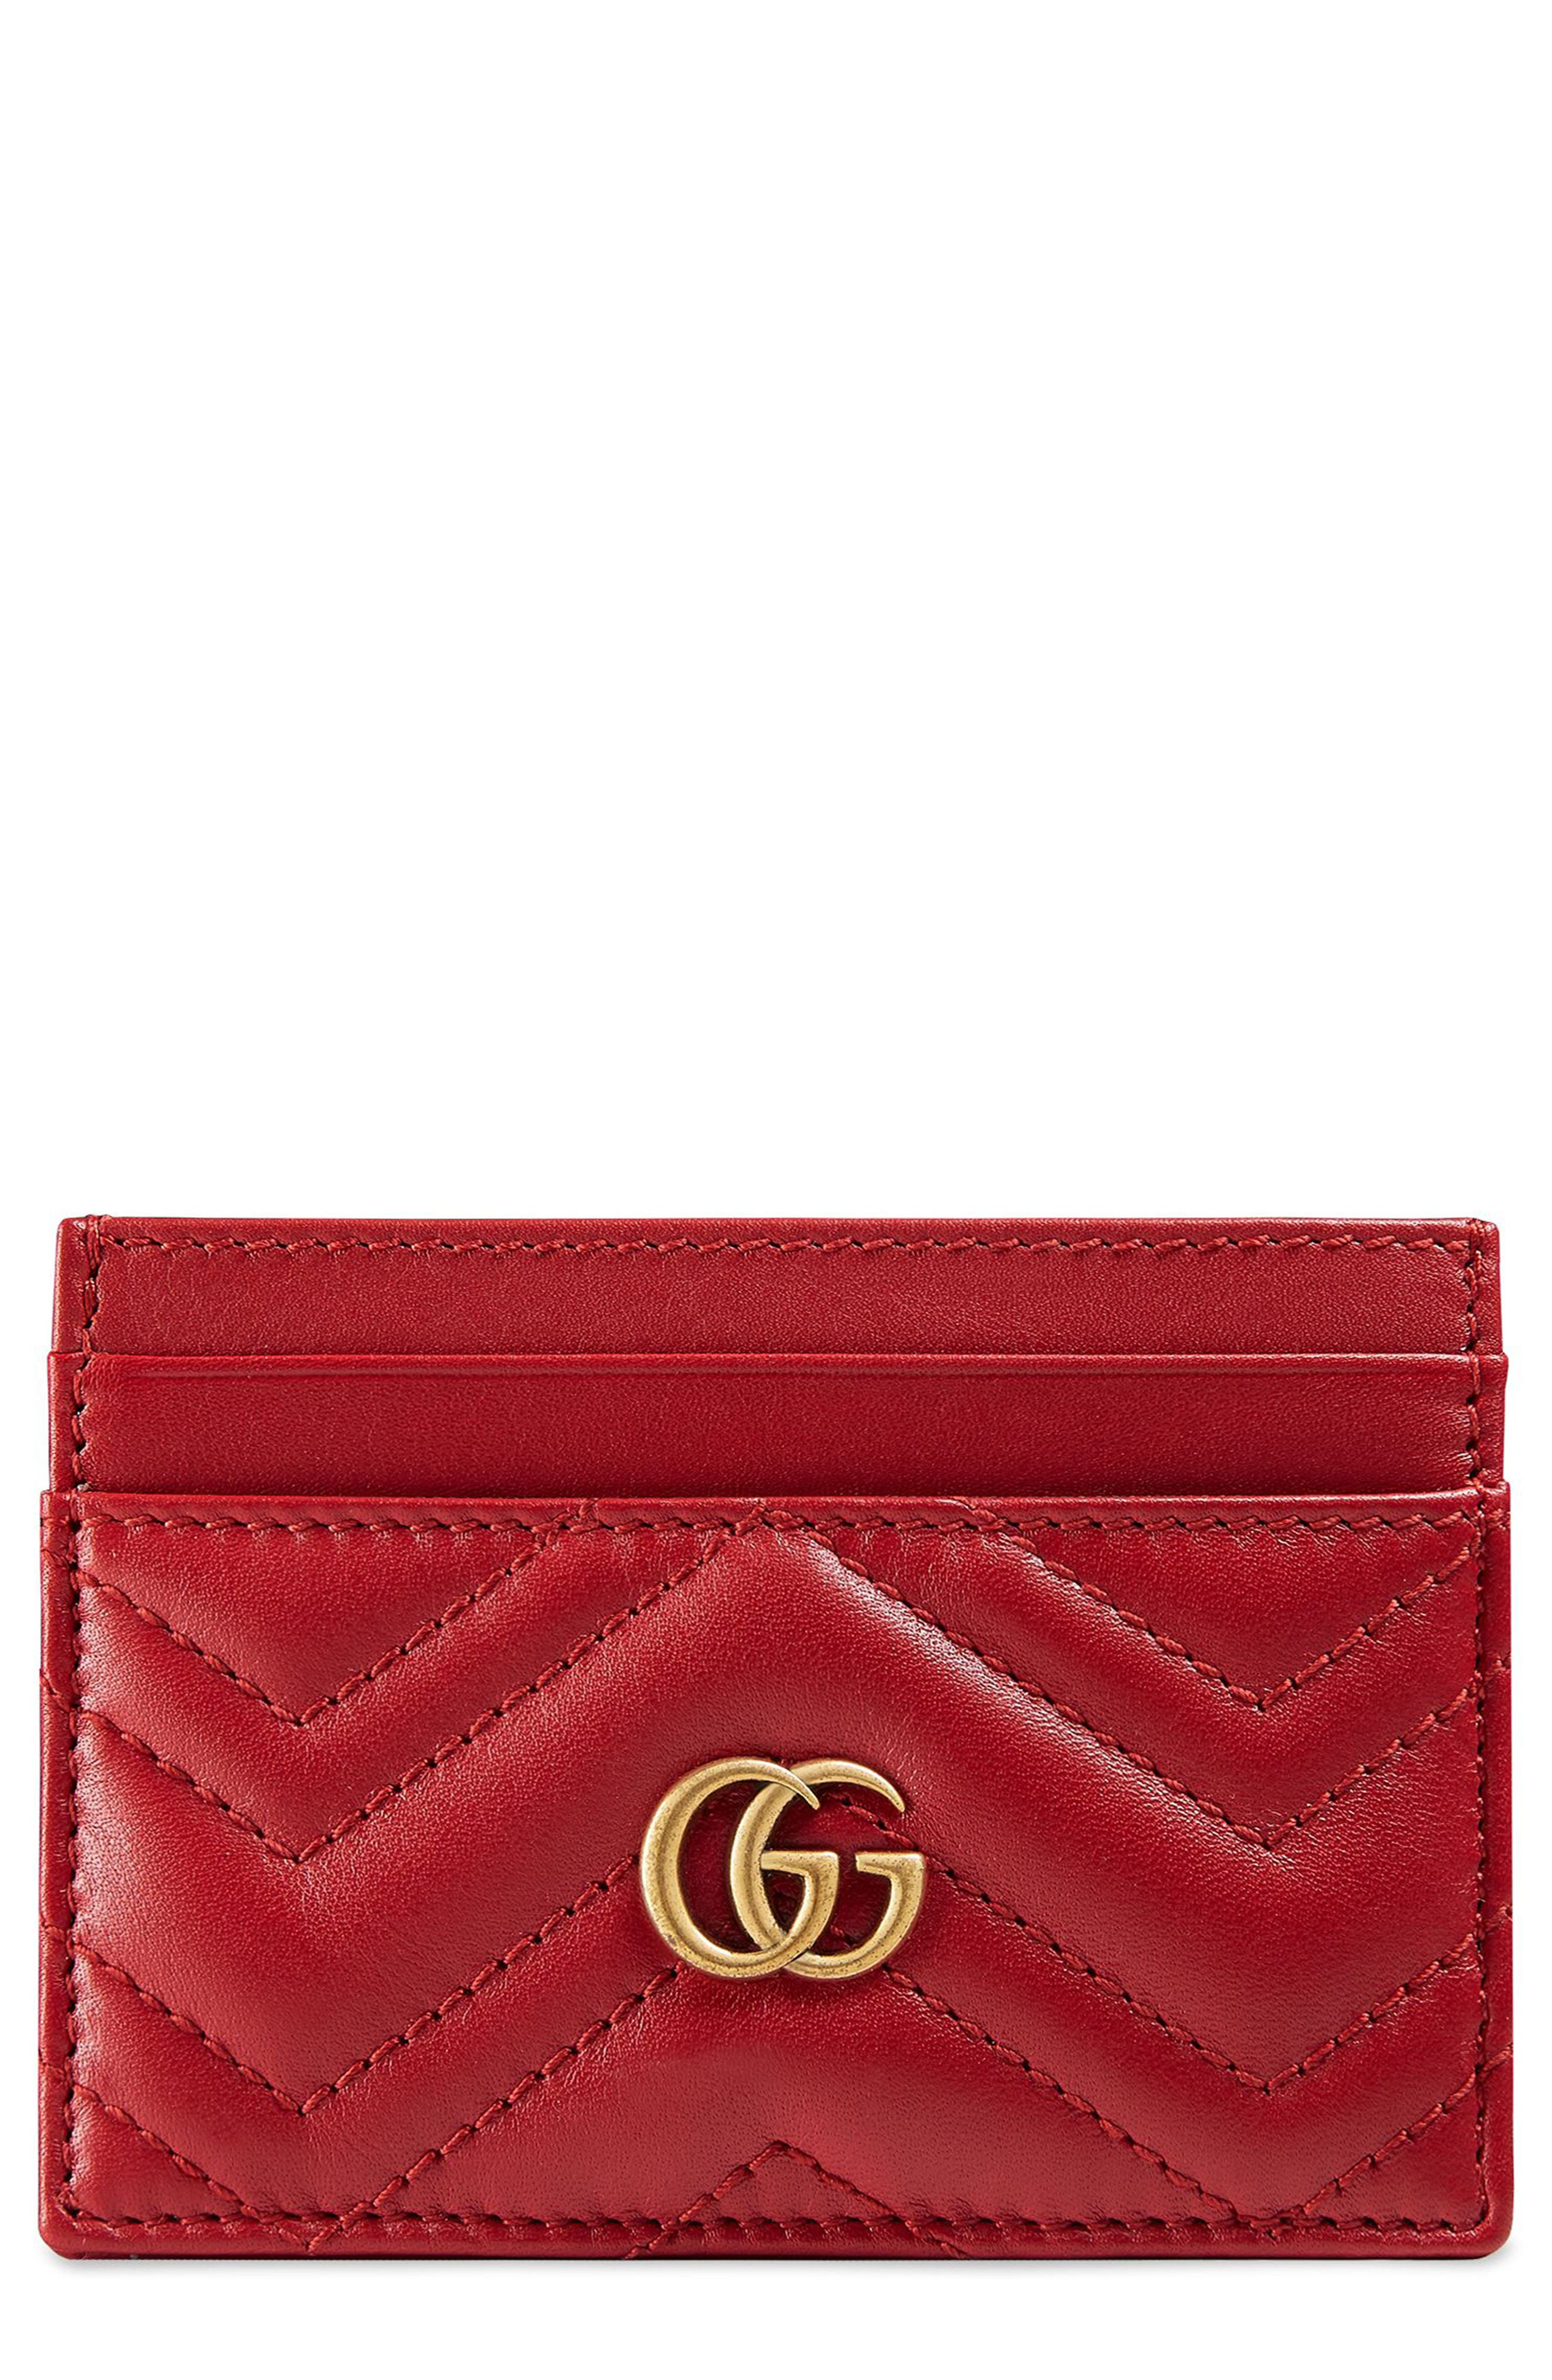 GG Marmont Matelassé Leather Card Case,                             Main thumbnail 1, color,                             HIBISCUS RED